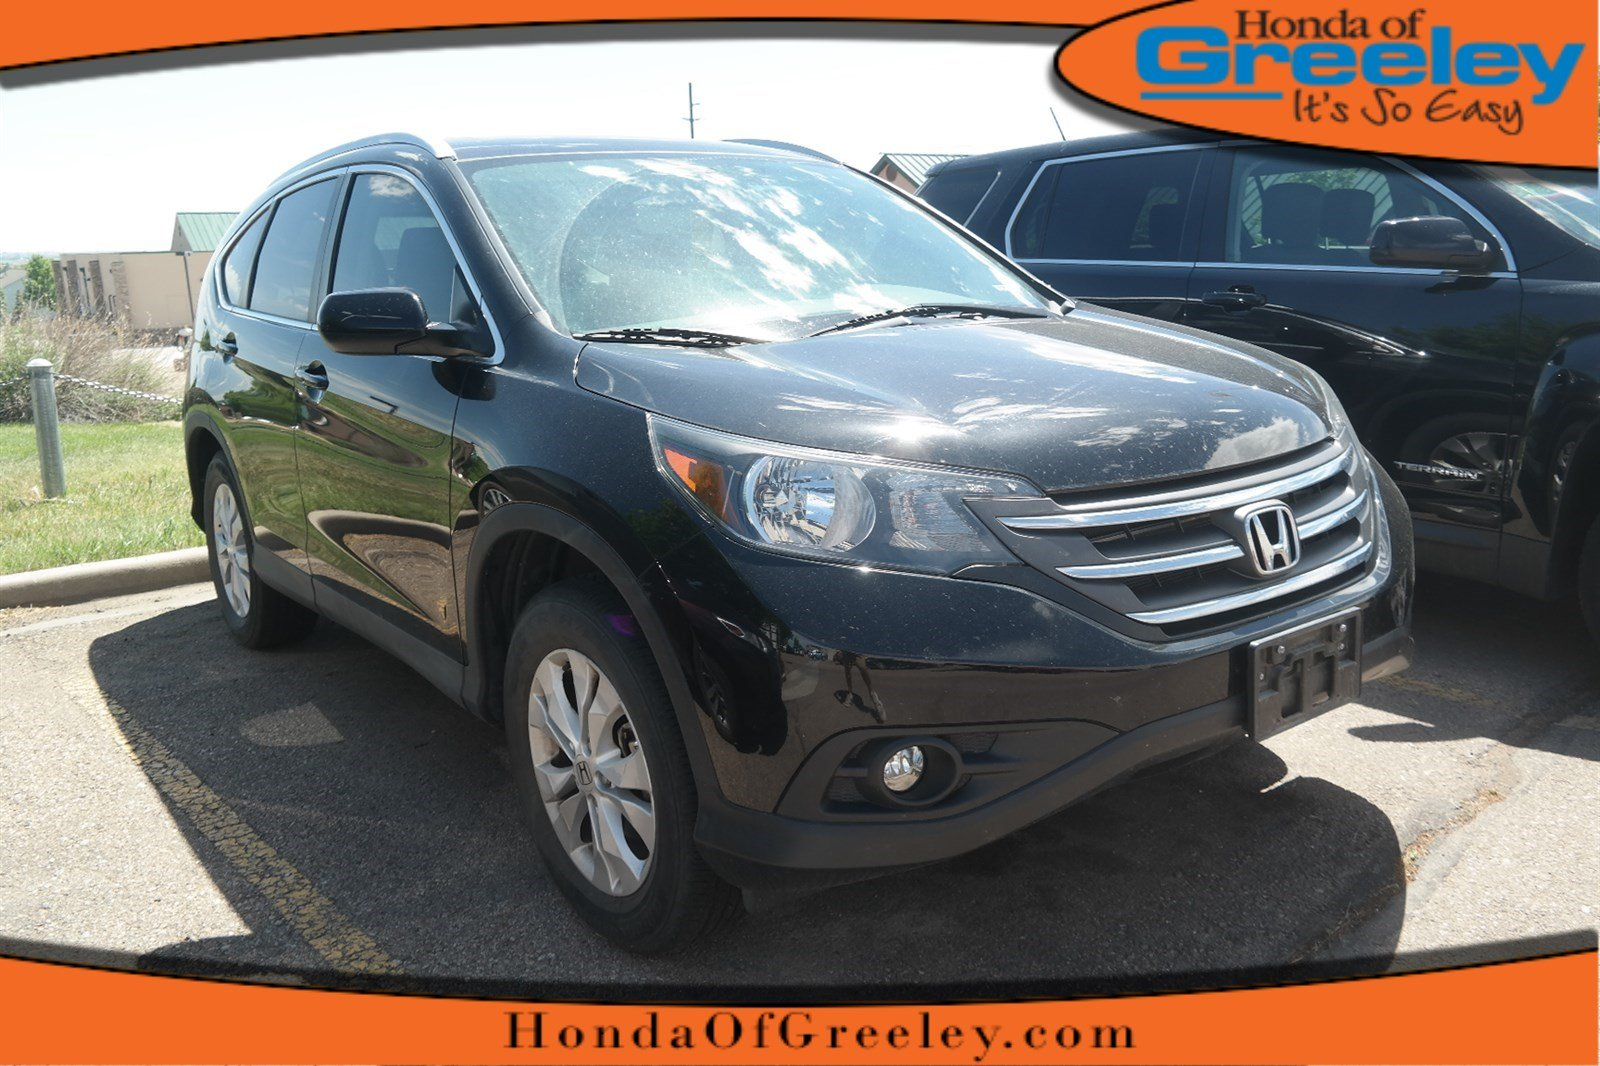 Photo Pre-Owned 2014 Honda CR-V EX-L All Wheel Drive Sport Utility For Sale in Greeley, Loveland, Windsor, Fort Collins, Longmont, Colorado